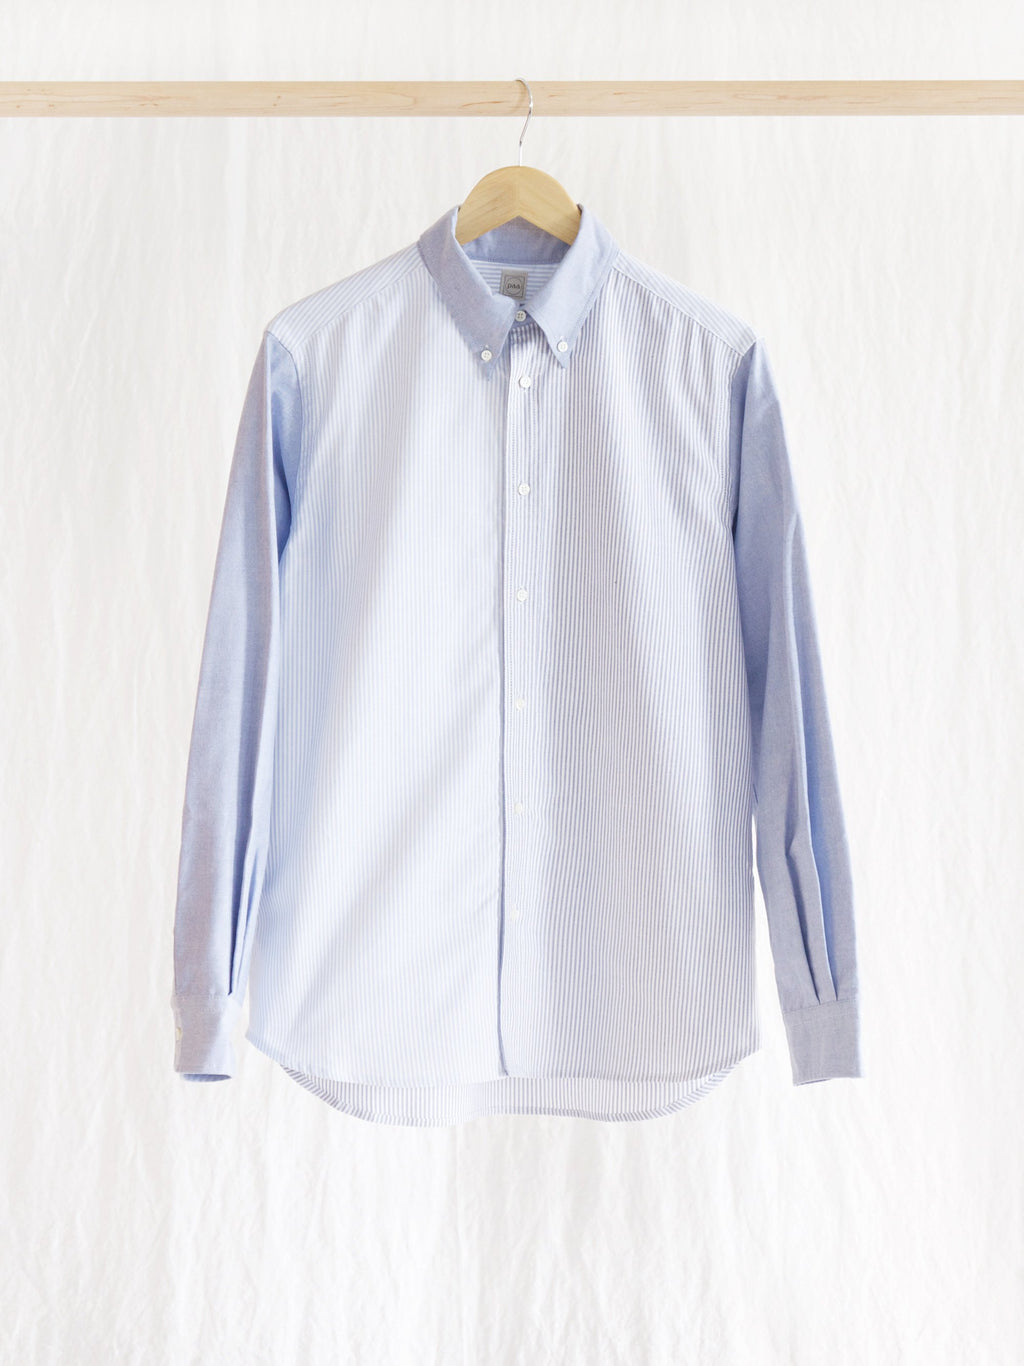 Namu Shop - paa LS Shirt Two - Blue Combo